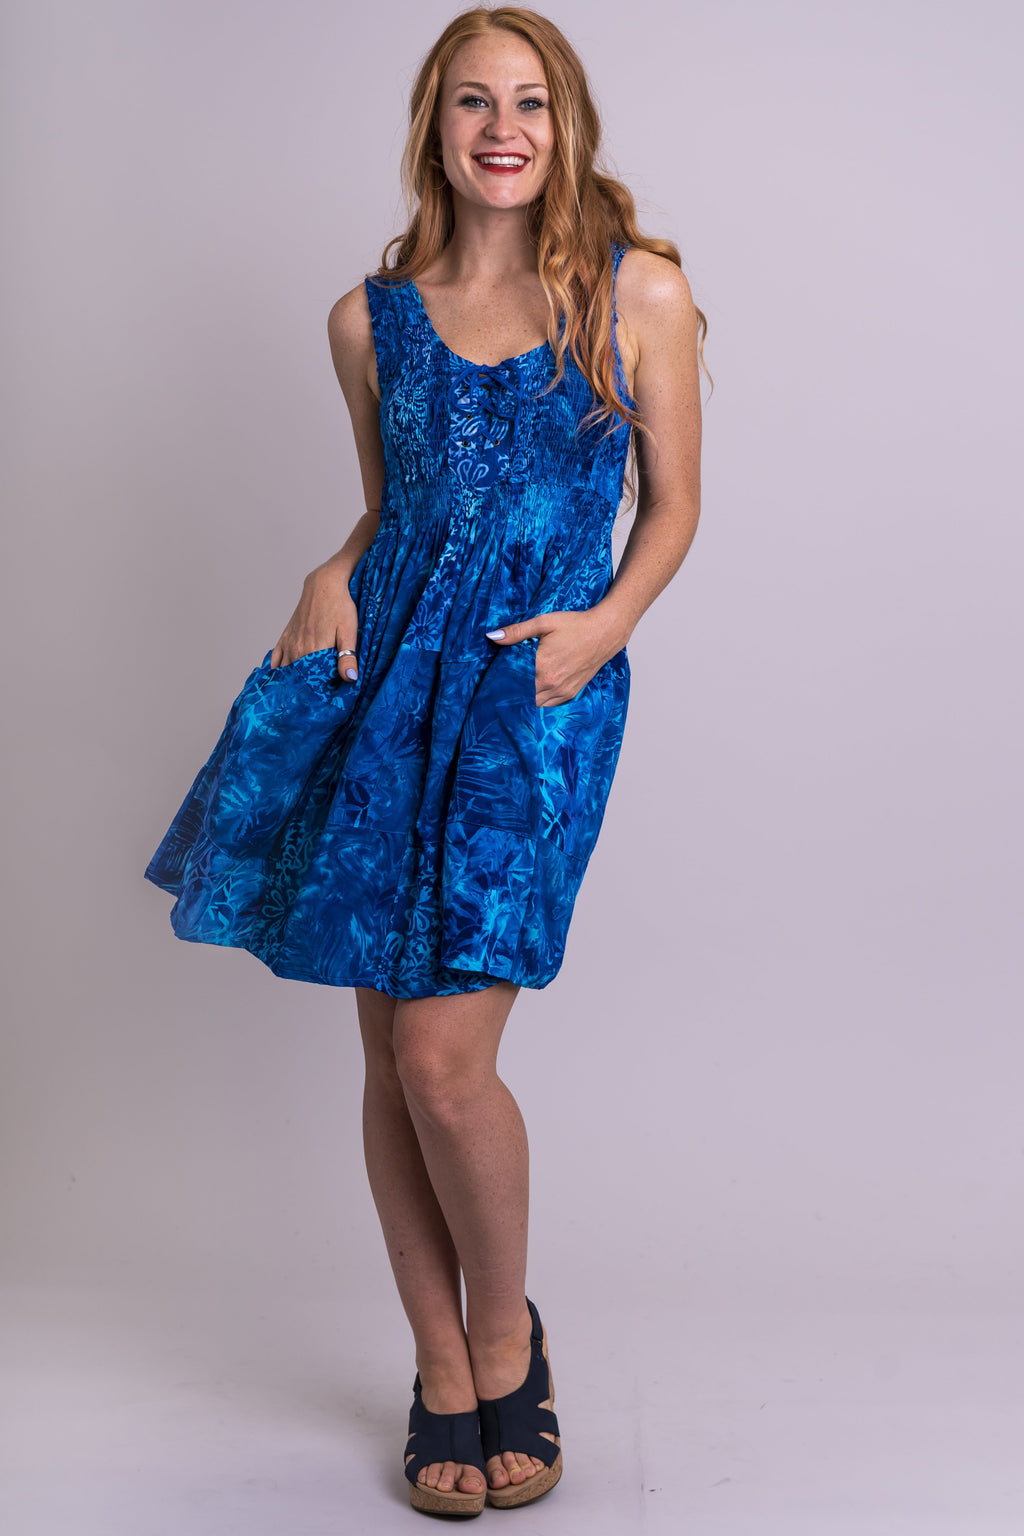 Giselle Dress, Blue Cheer, Batik Art - Blue Sky Clothing Co